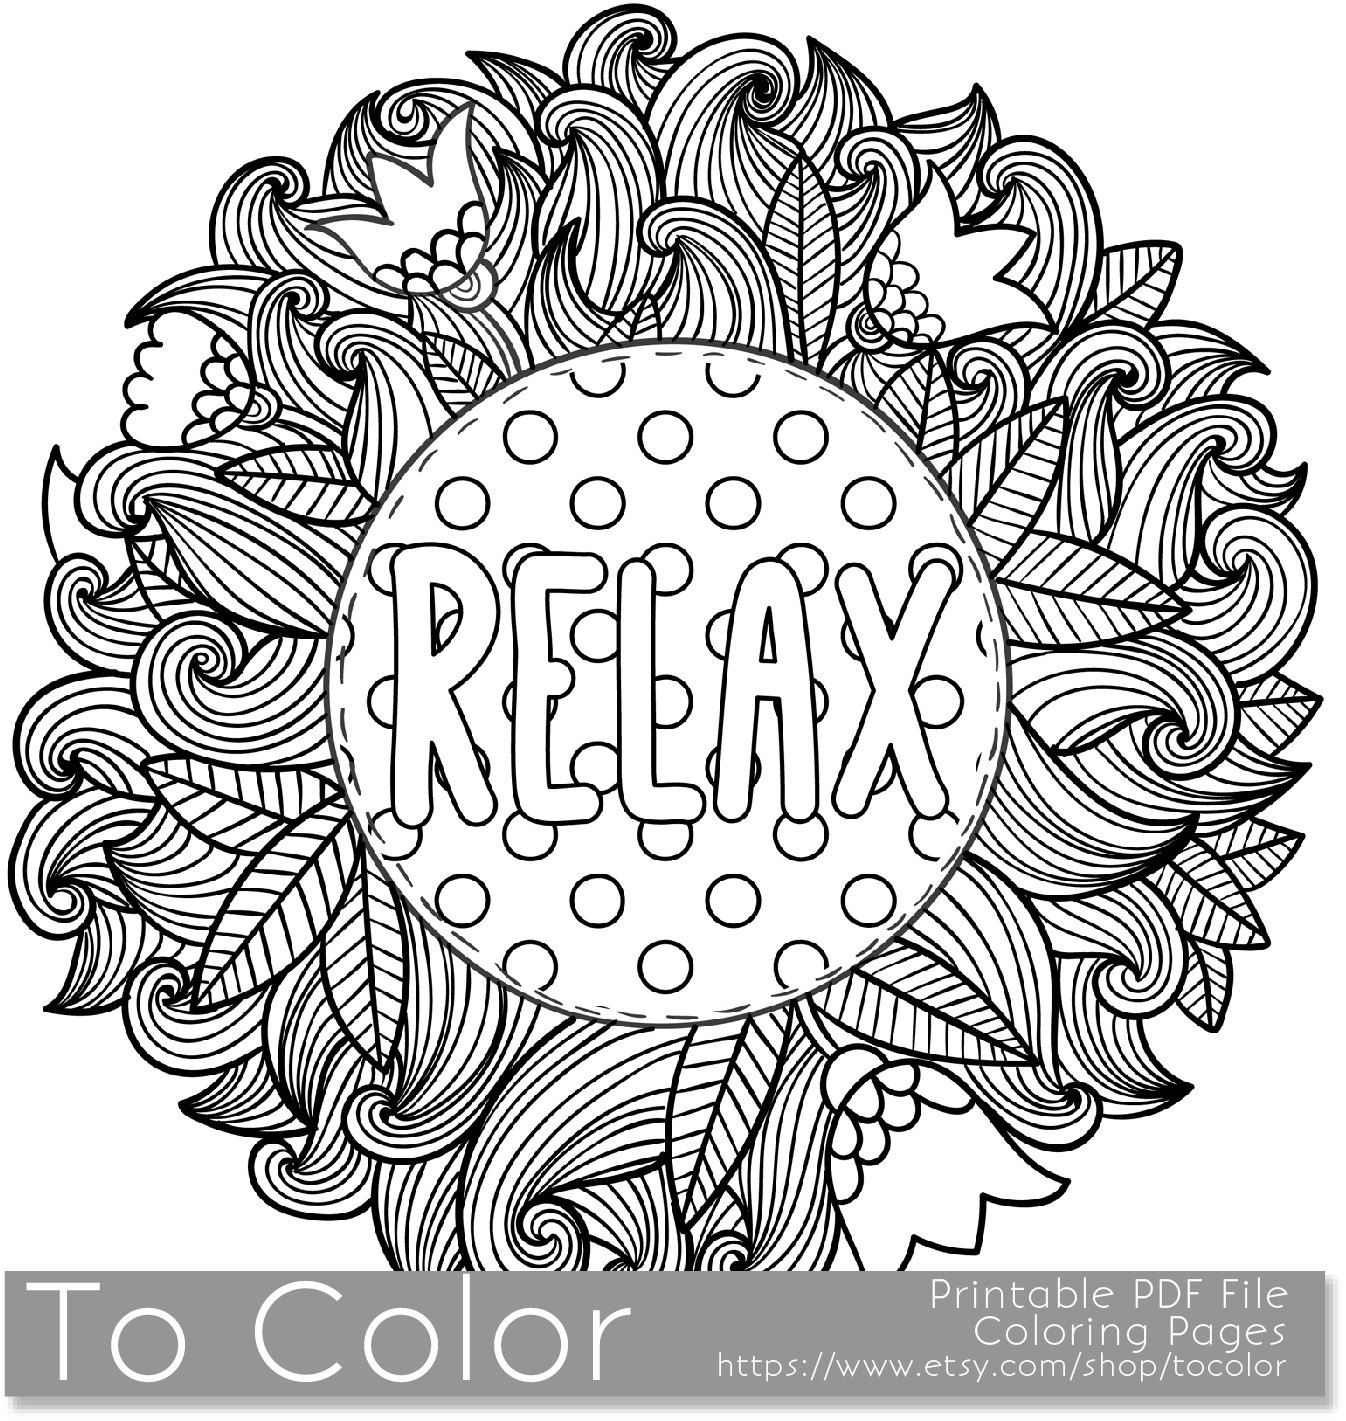 Printable Relax Coloring Page For Adults, Pdf / Jpg, Instant | Colouring Worksheets Printable Pdf